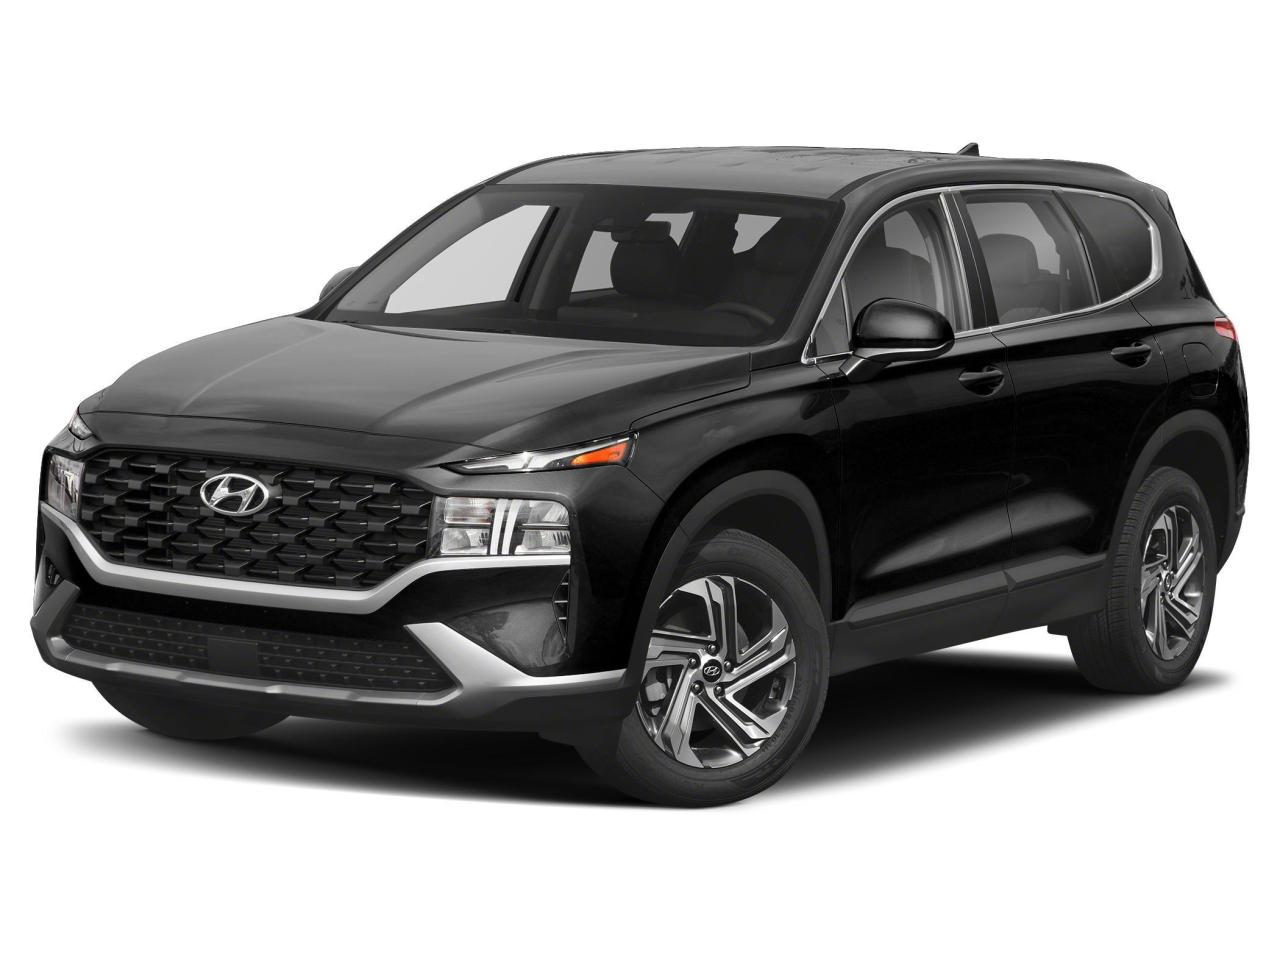 2021 Hyundai Santa Fe 2.5L ESSENTIAL FWD NO OPTIONS